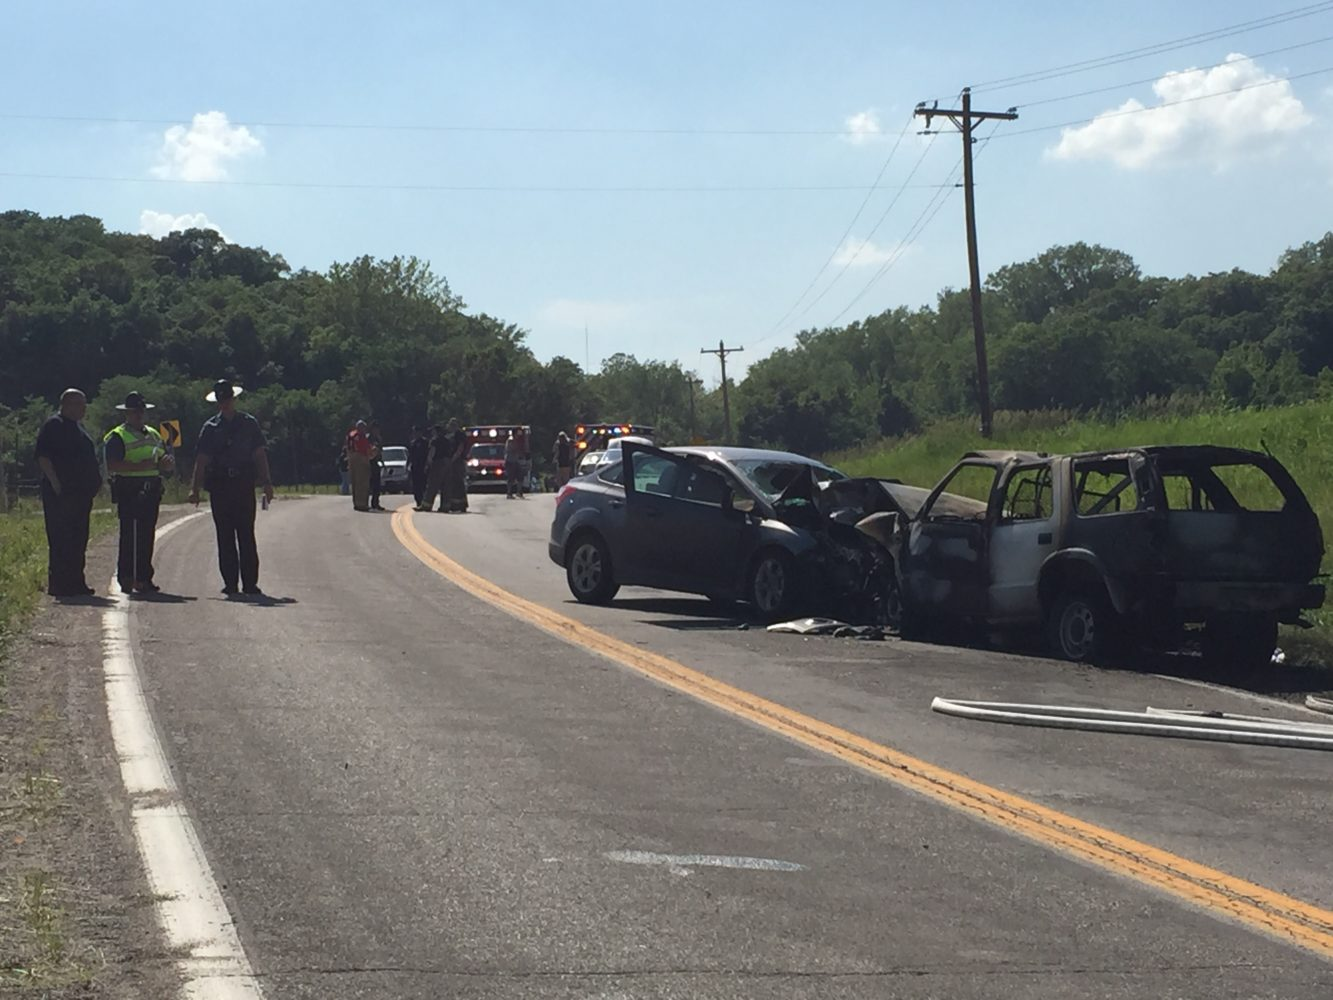 Four vehicle accident, multiple injuries and reported vehicle fire